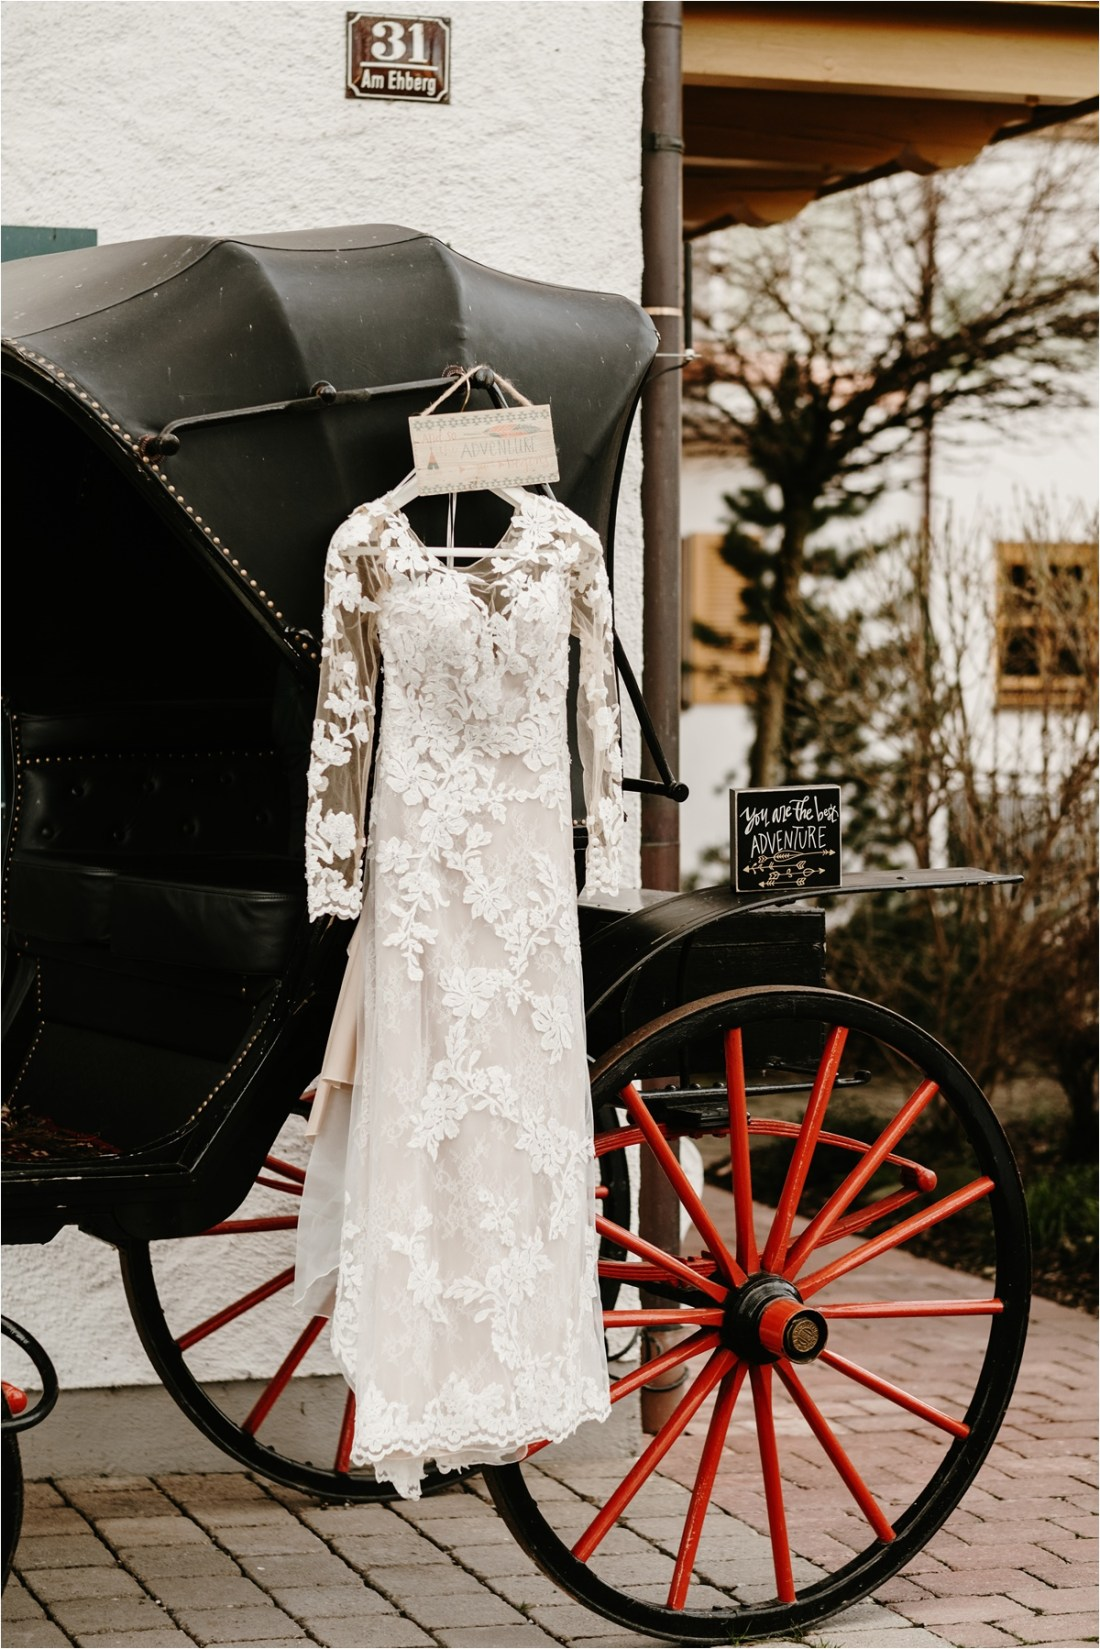 Pronovias wedding dress hangs outside the venue for this LGBT elopement in the Bavarian Alps. Photo by Wild Connections Photography